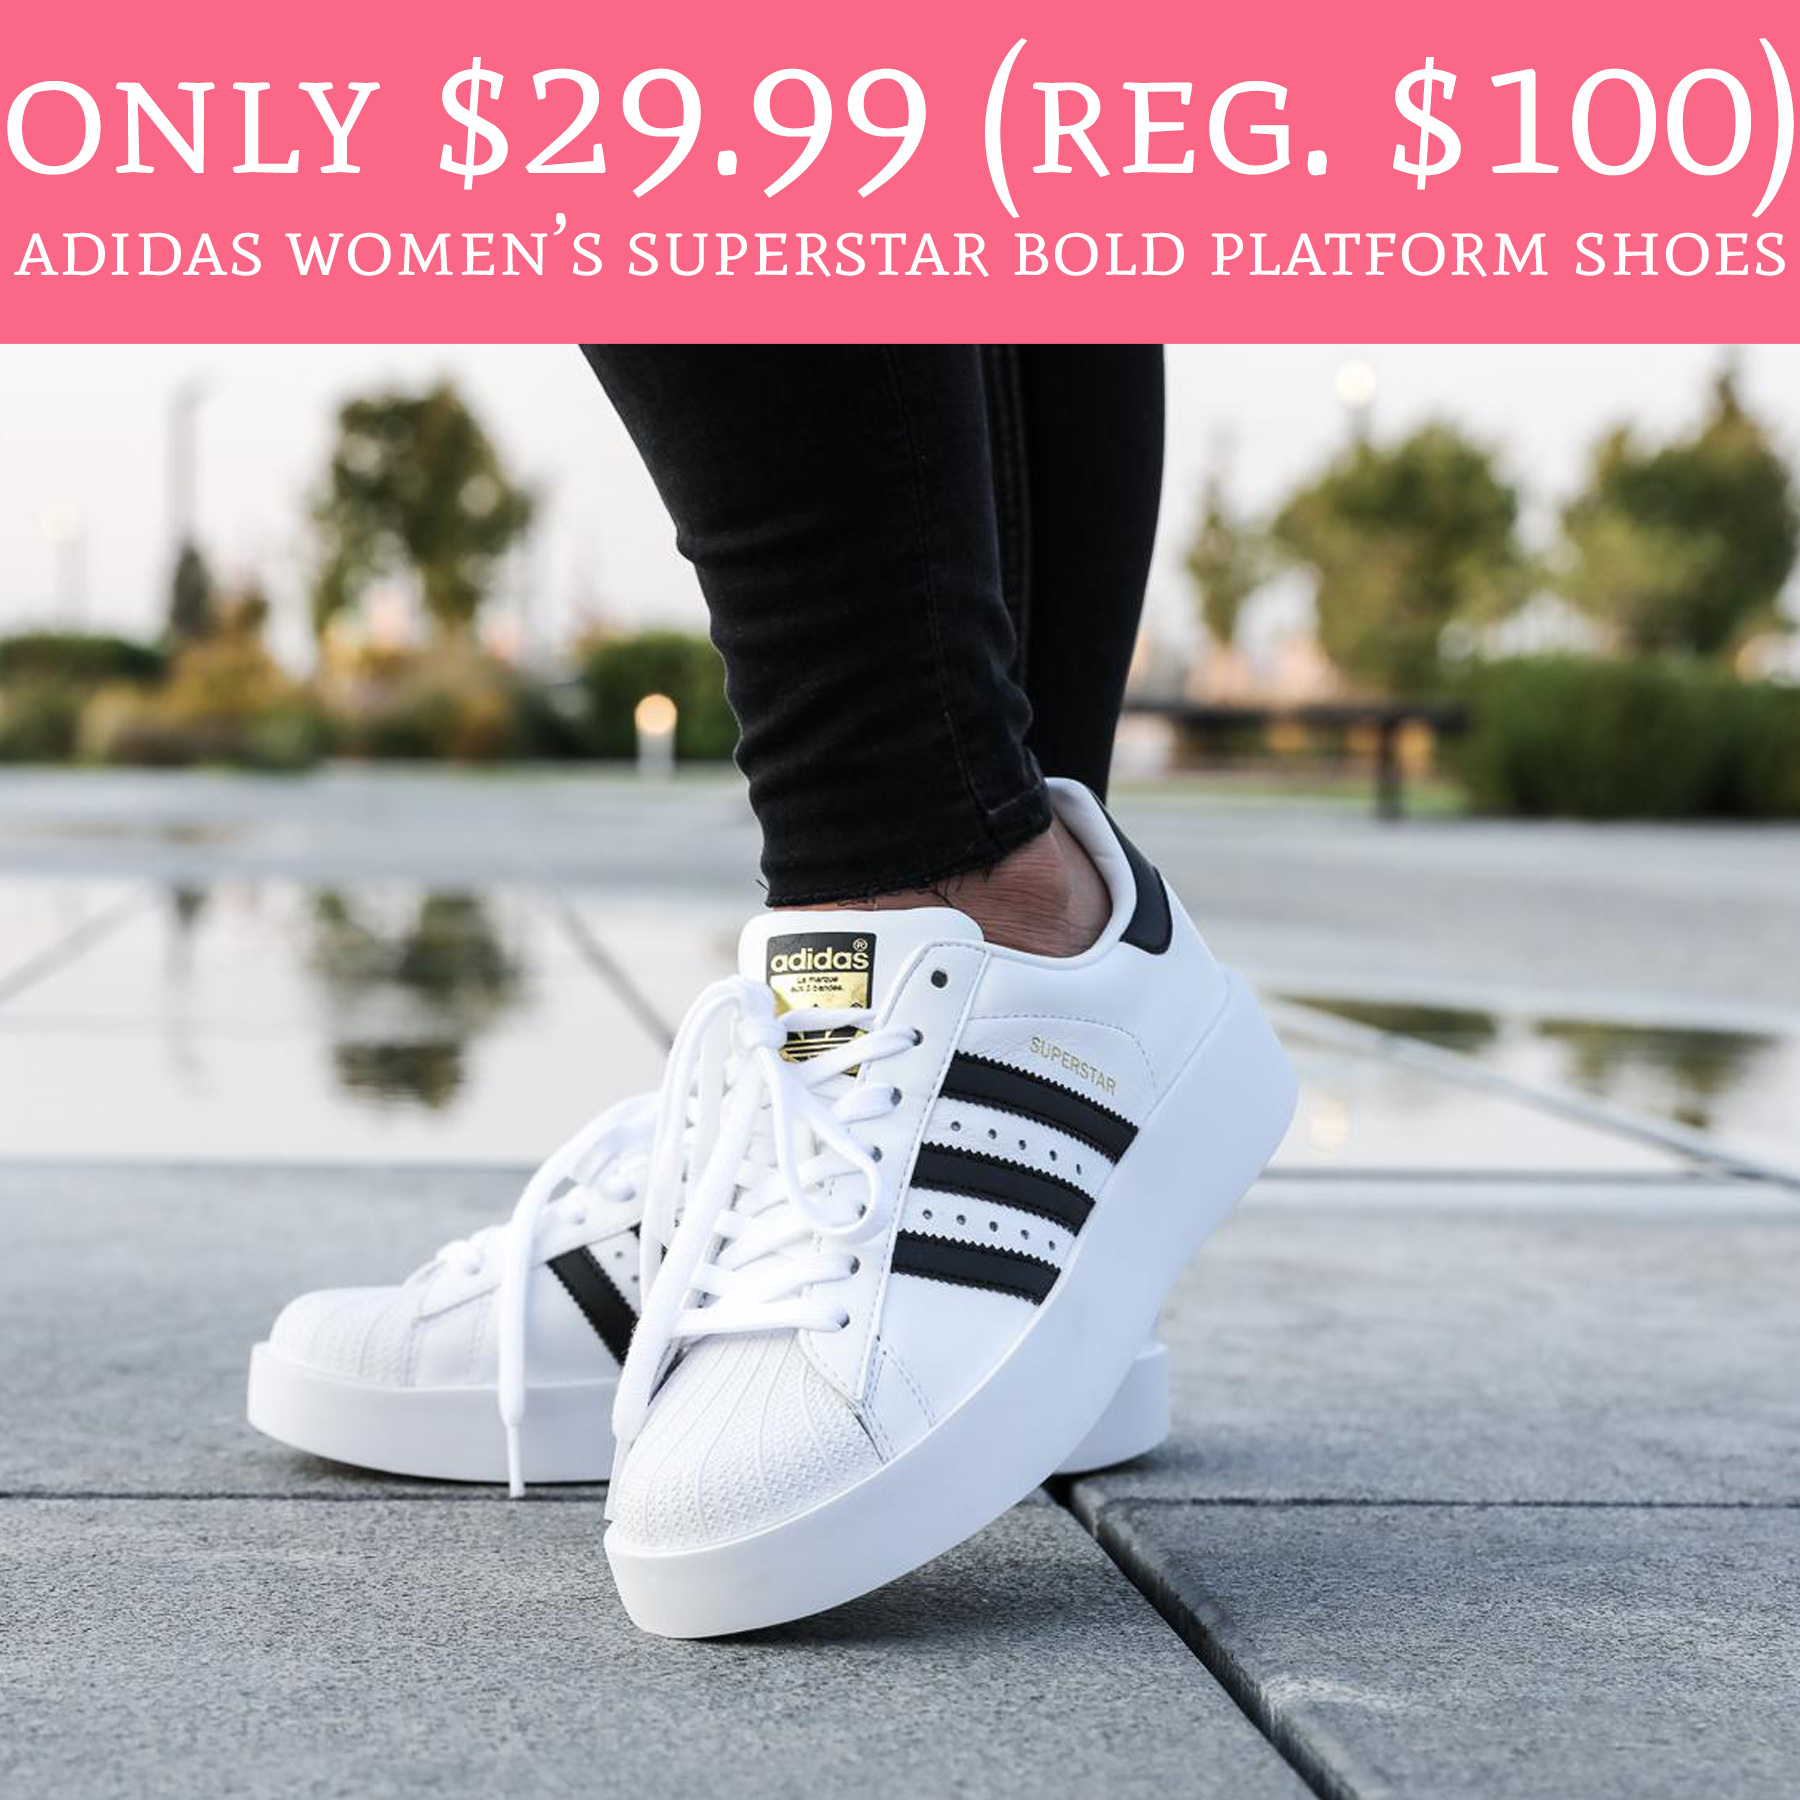 5f7b0db8ffcc RUN!  29.99 (Regular  100) Adidas Women s Superstar Bold Platform ...